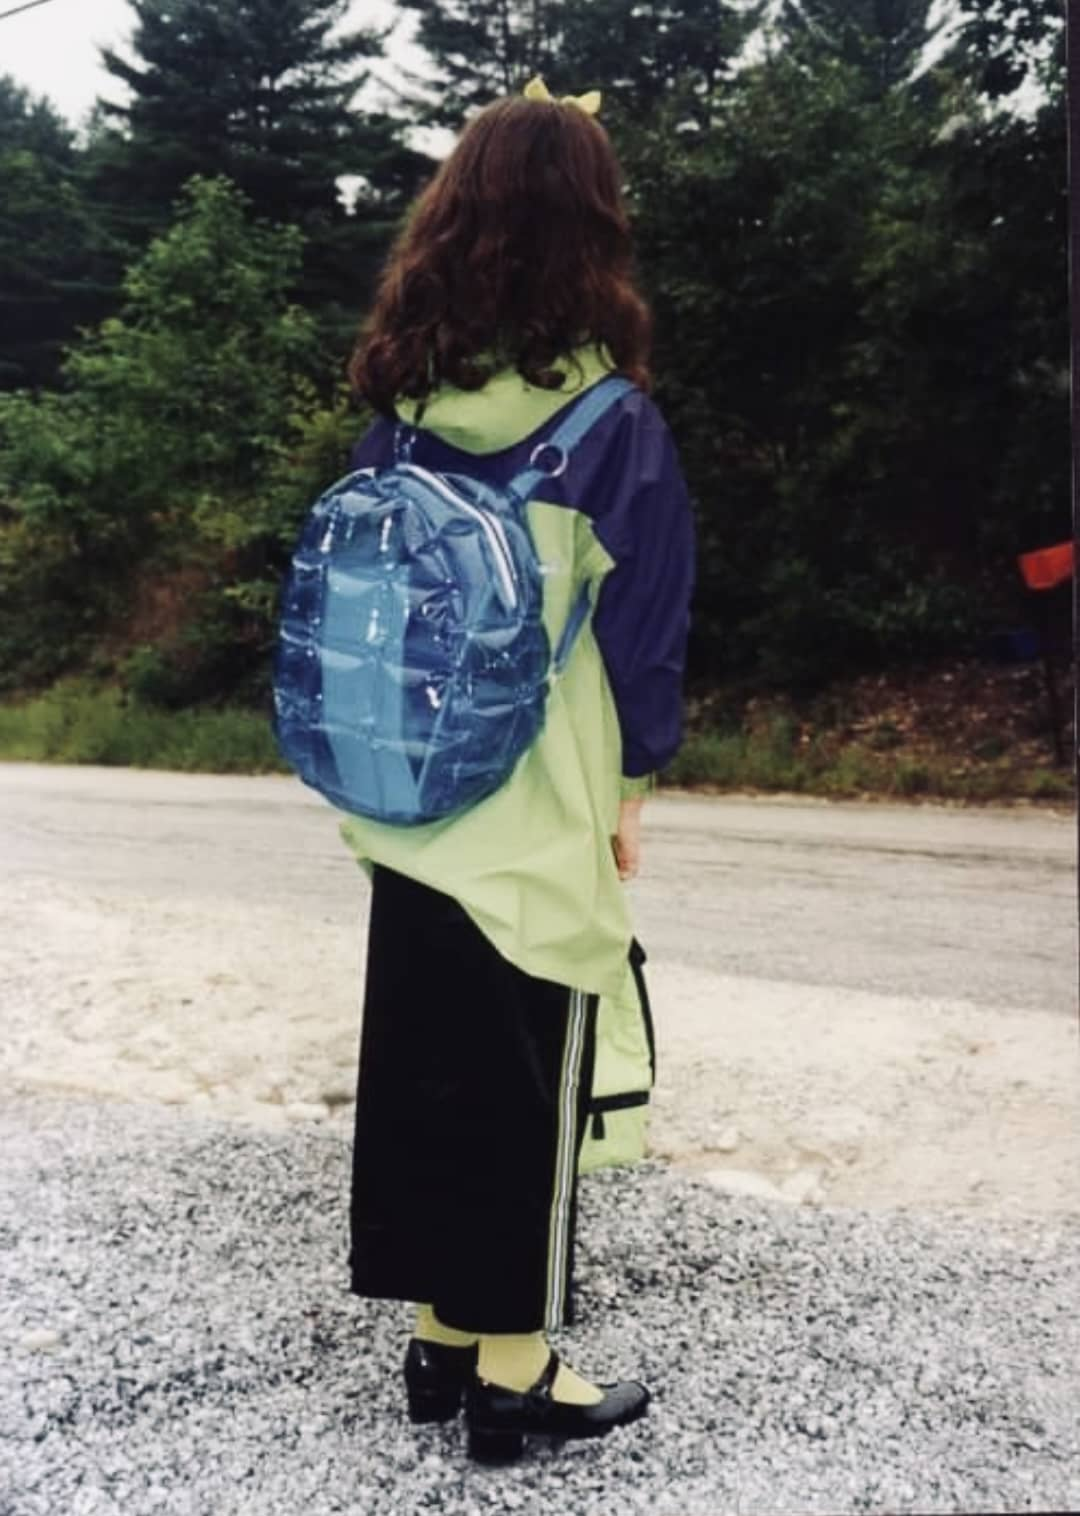 A young girl standing with her back to the camera. She's wearing a long dress, tights, heels, rain jacket, and is wearing an inflatable backpack.